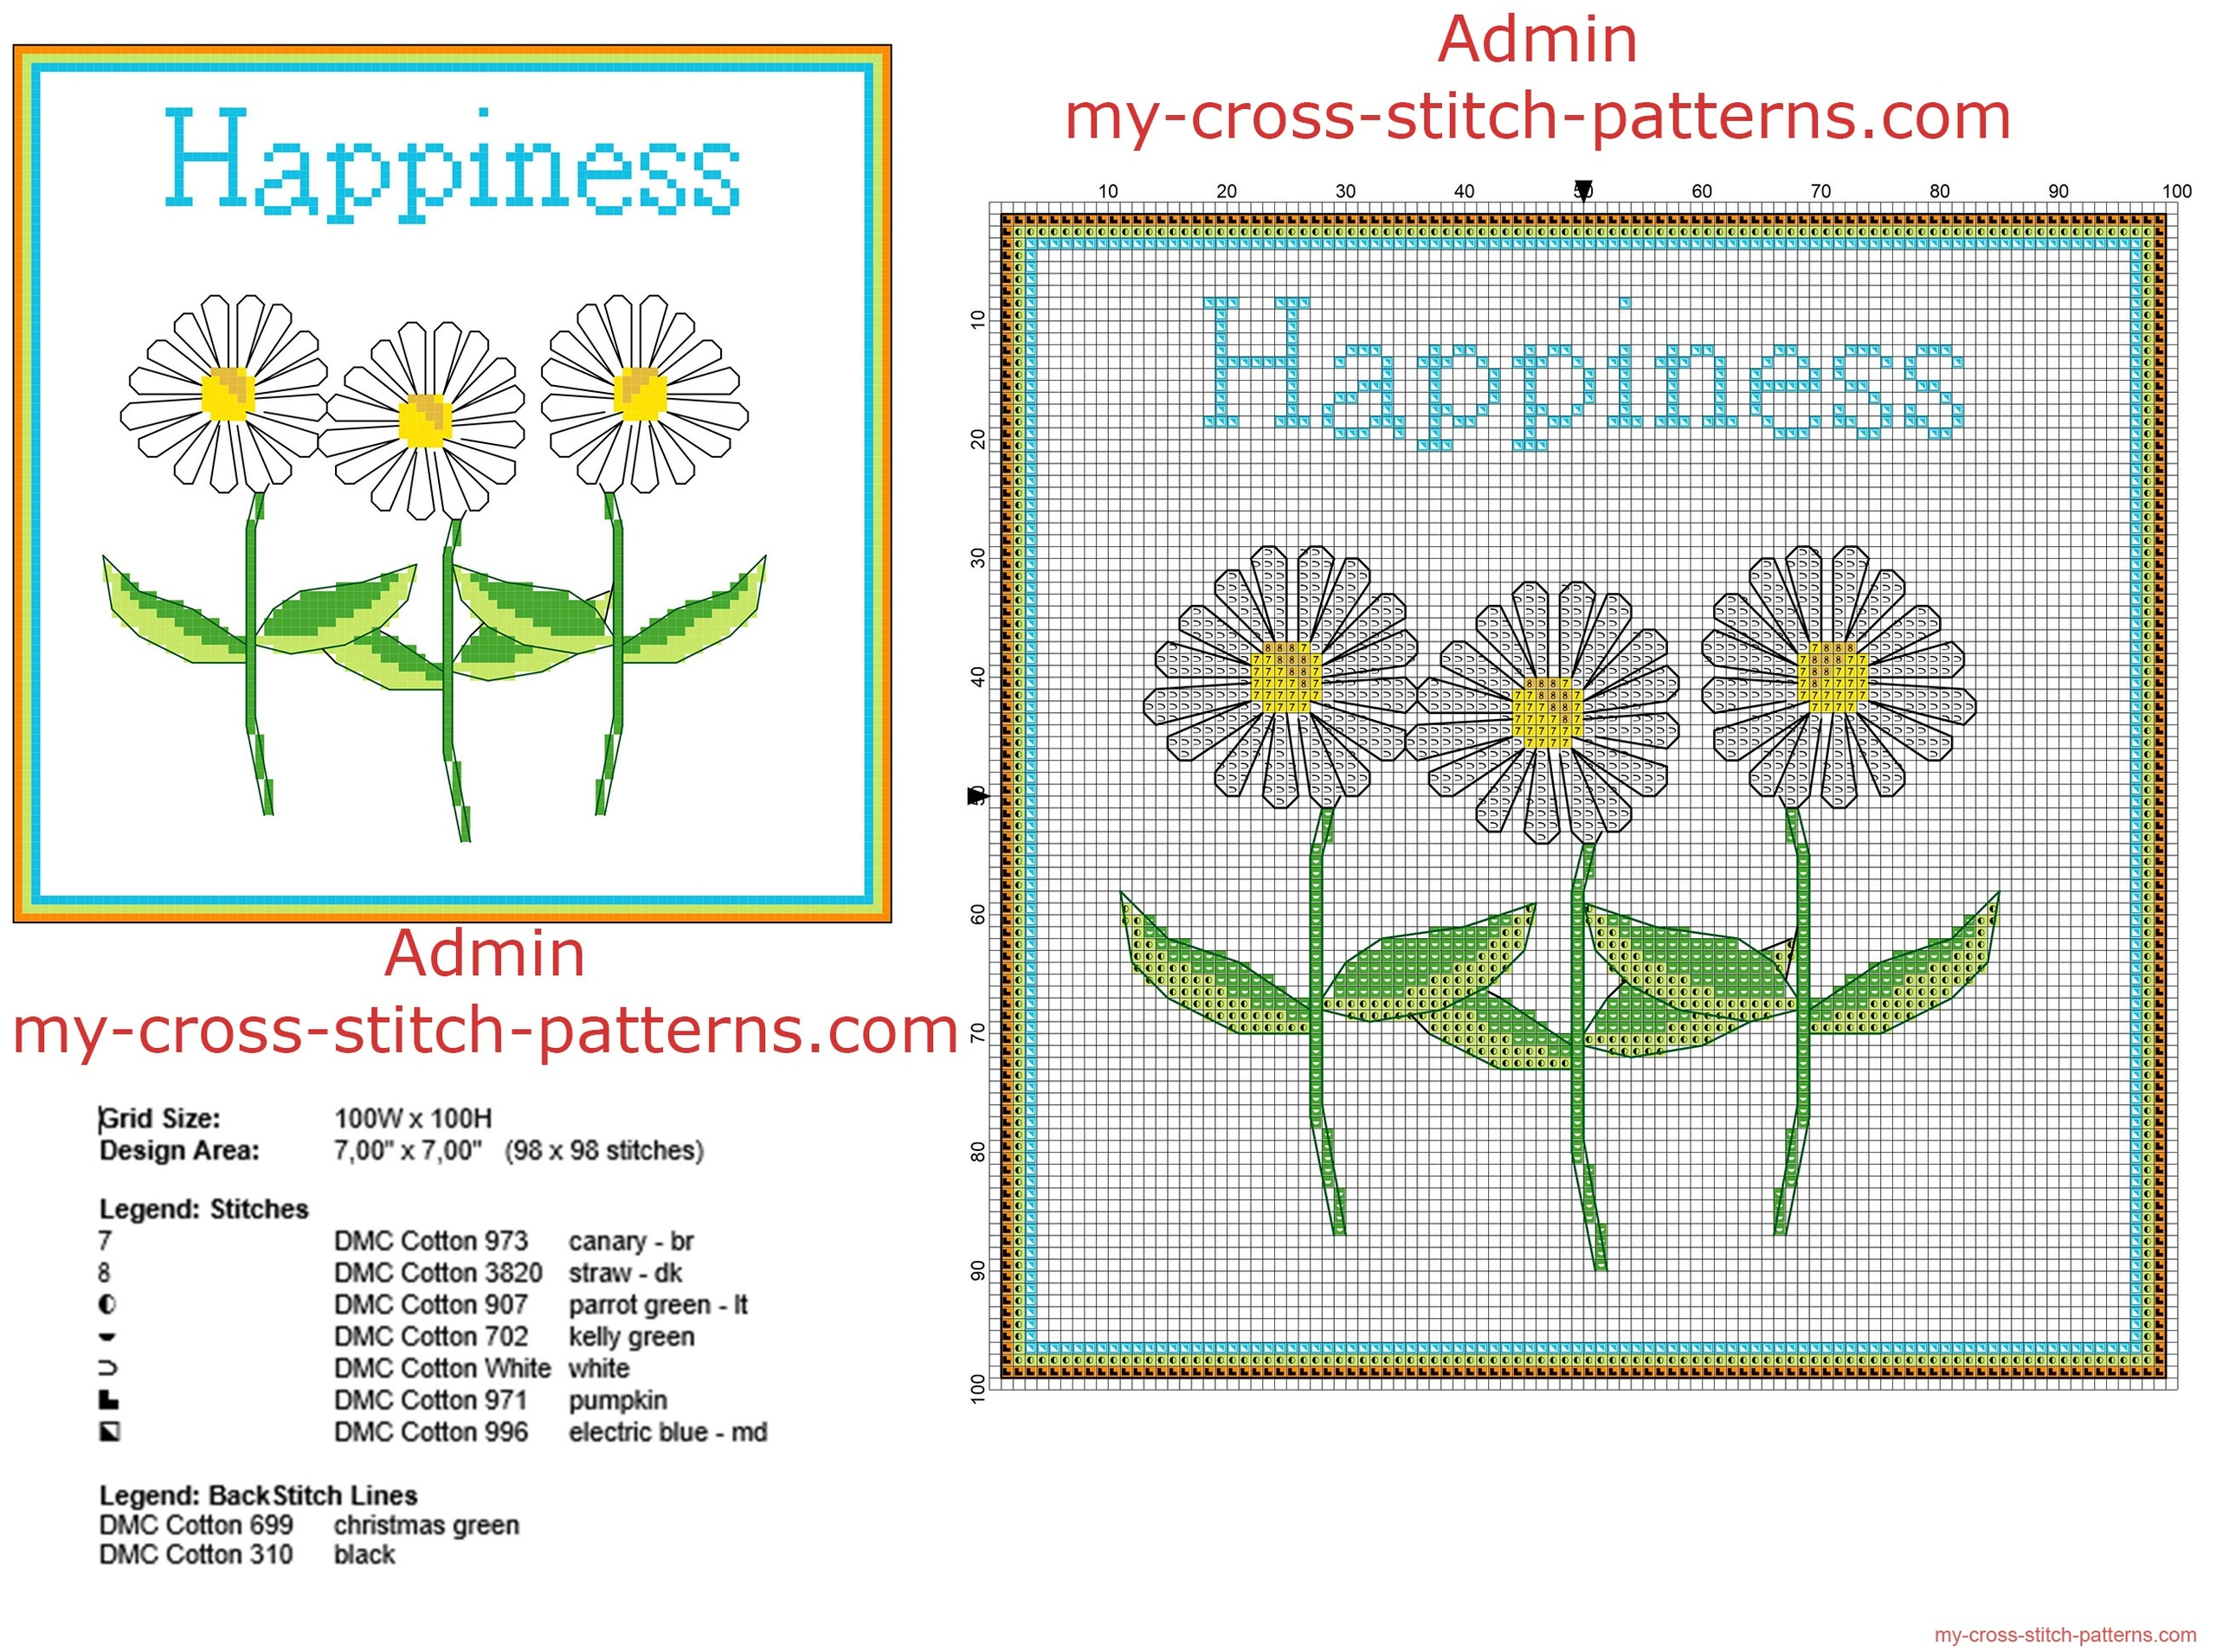 cross_stitch_home_painting_idea_with_three_daisy_flowers_and_text_happiness_free_download_in_100_sti